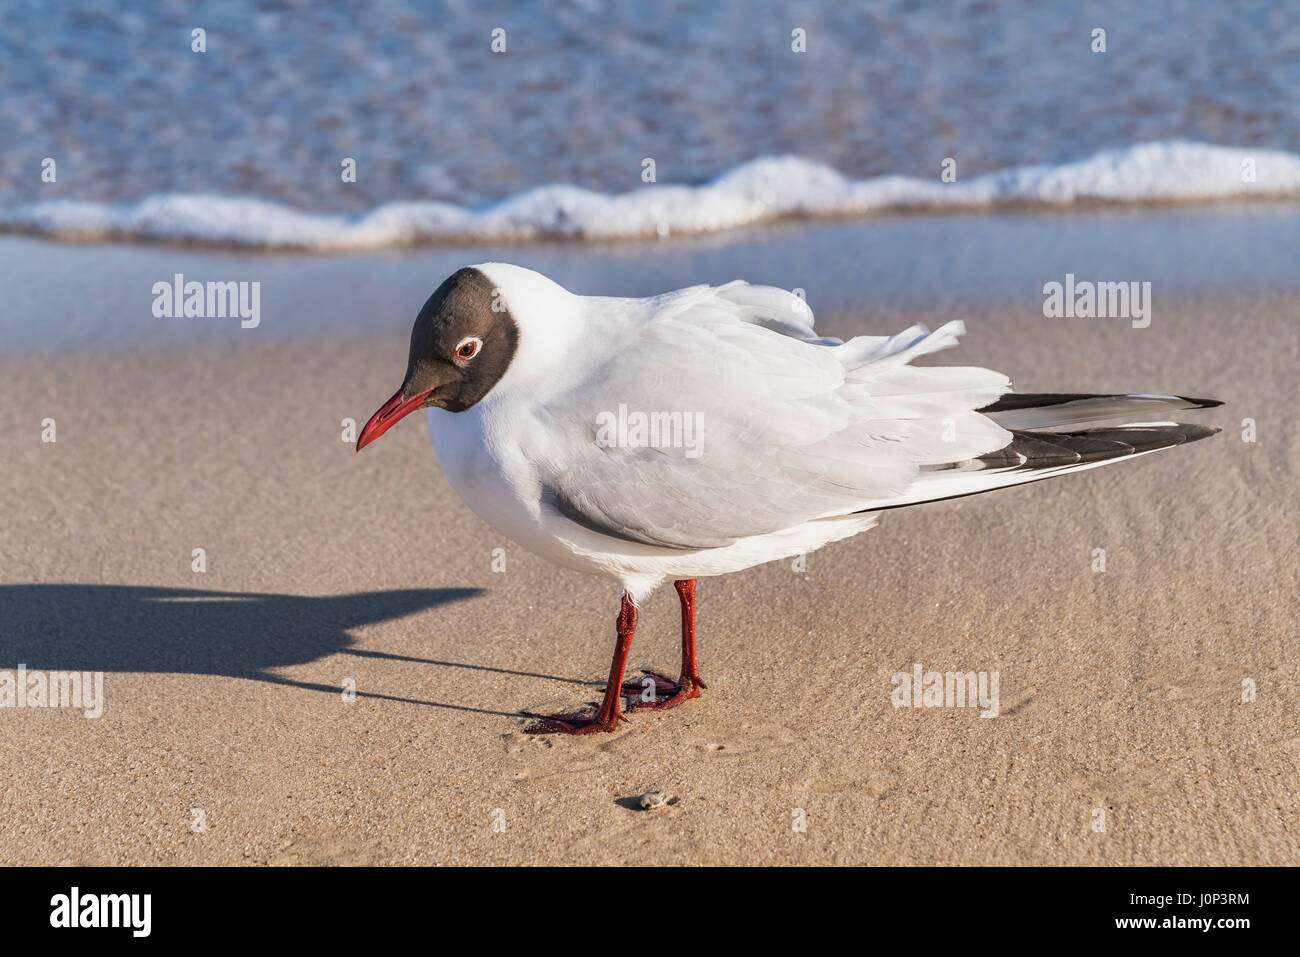 Detail view of a Black-headed gull on the beach of the Baltic Sea in Kolobrzeg, West Pomeranian, Poland, Europe - Stock Image